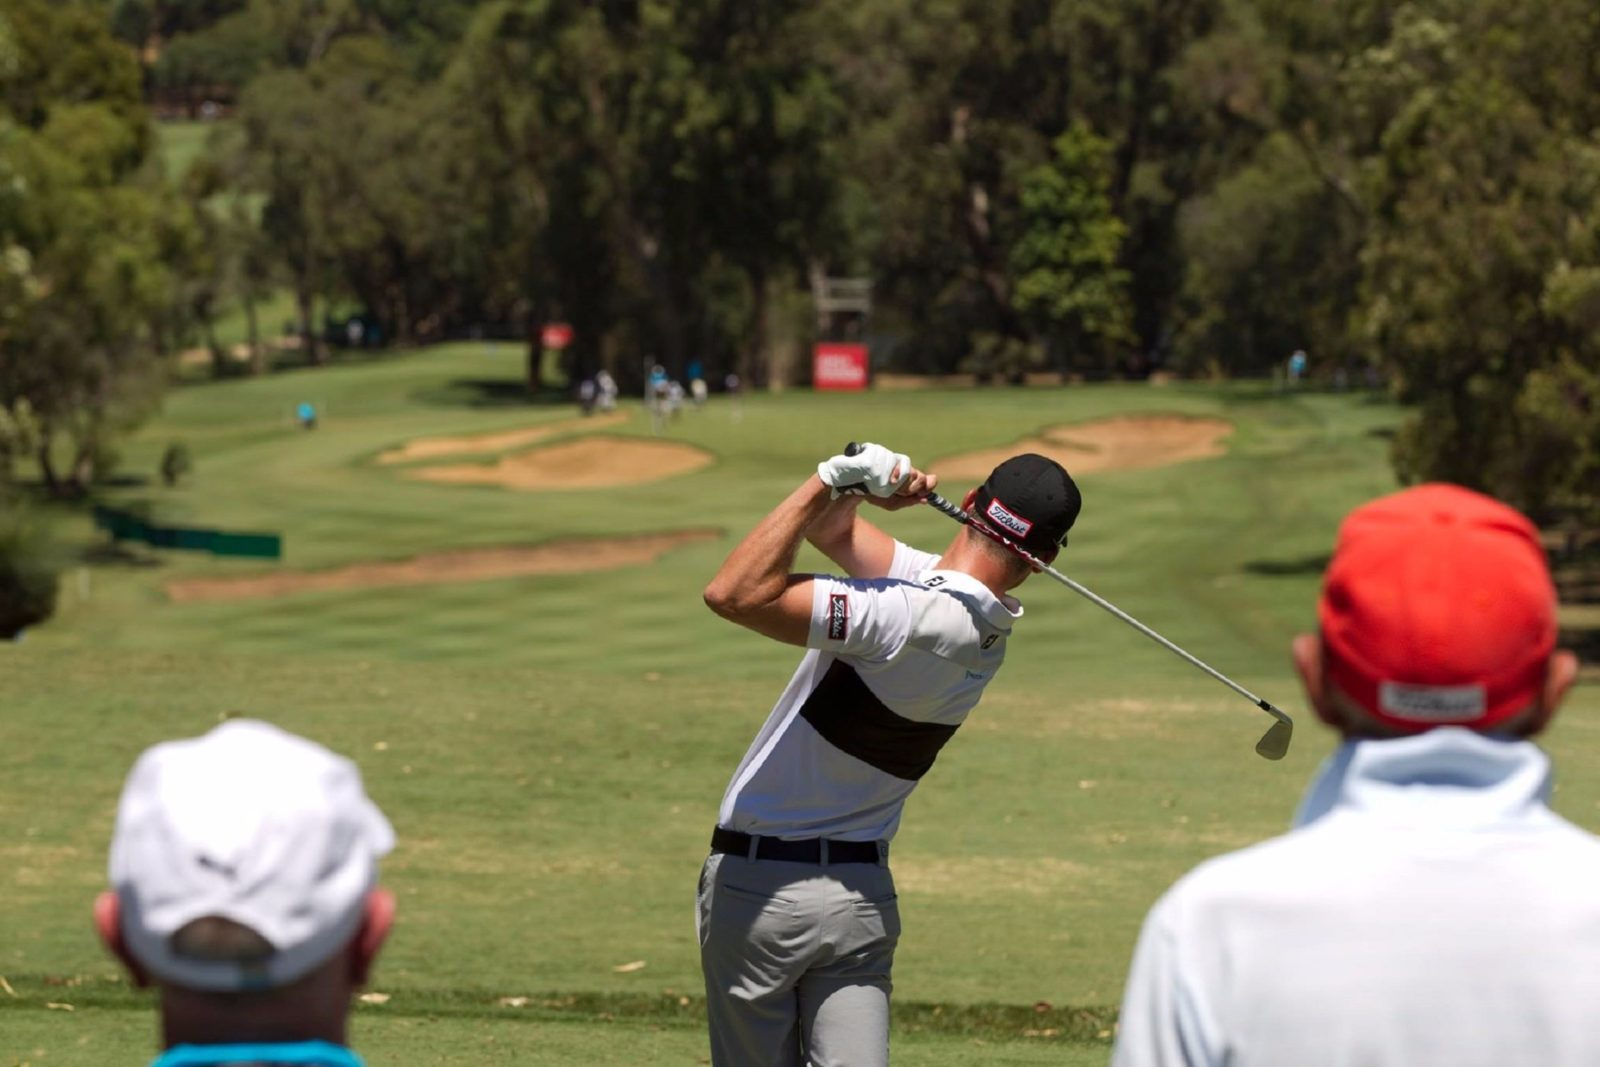 ISPS Handa World Super 6 Perth, Karrinyup, Western Australia